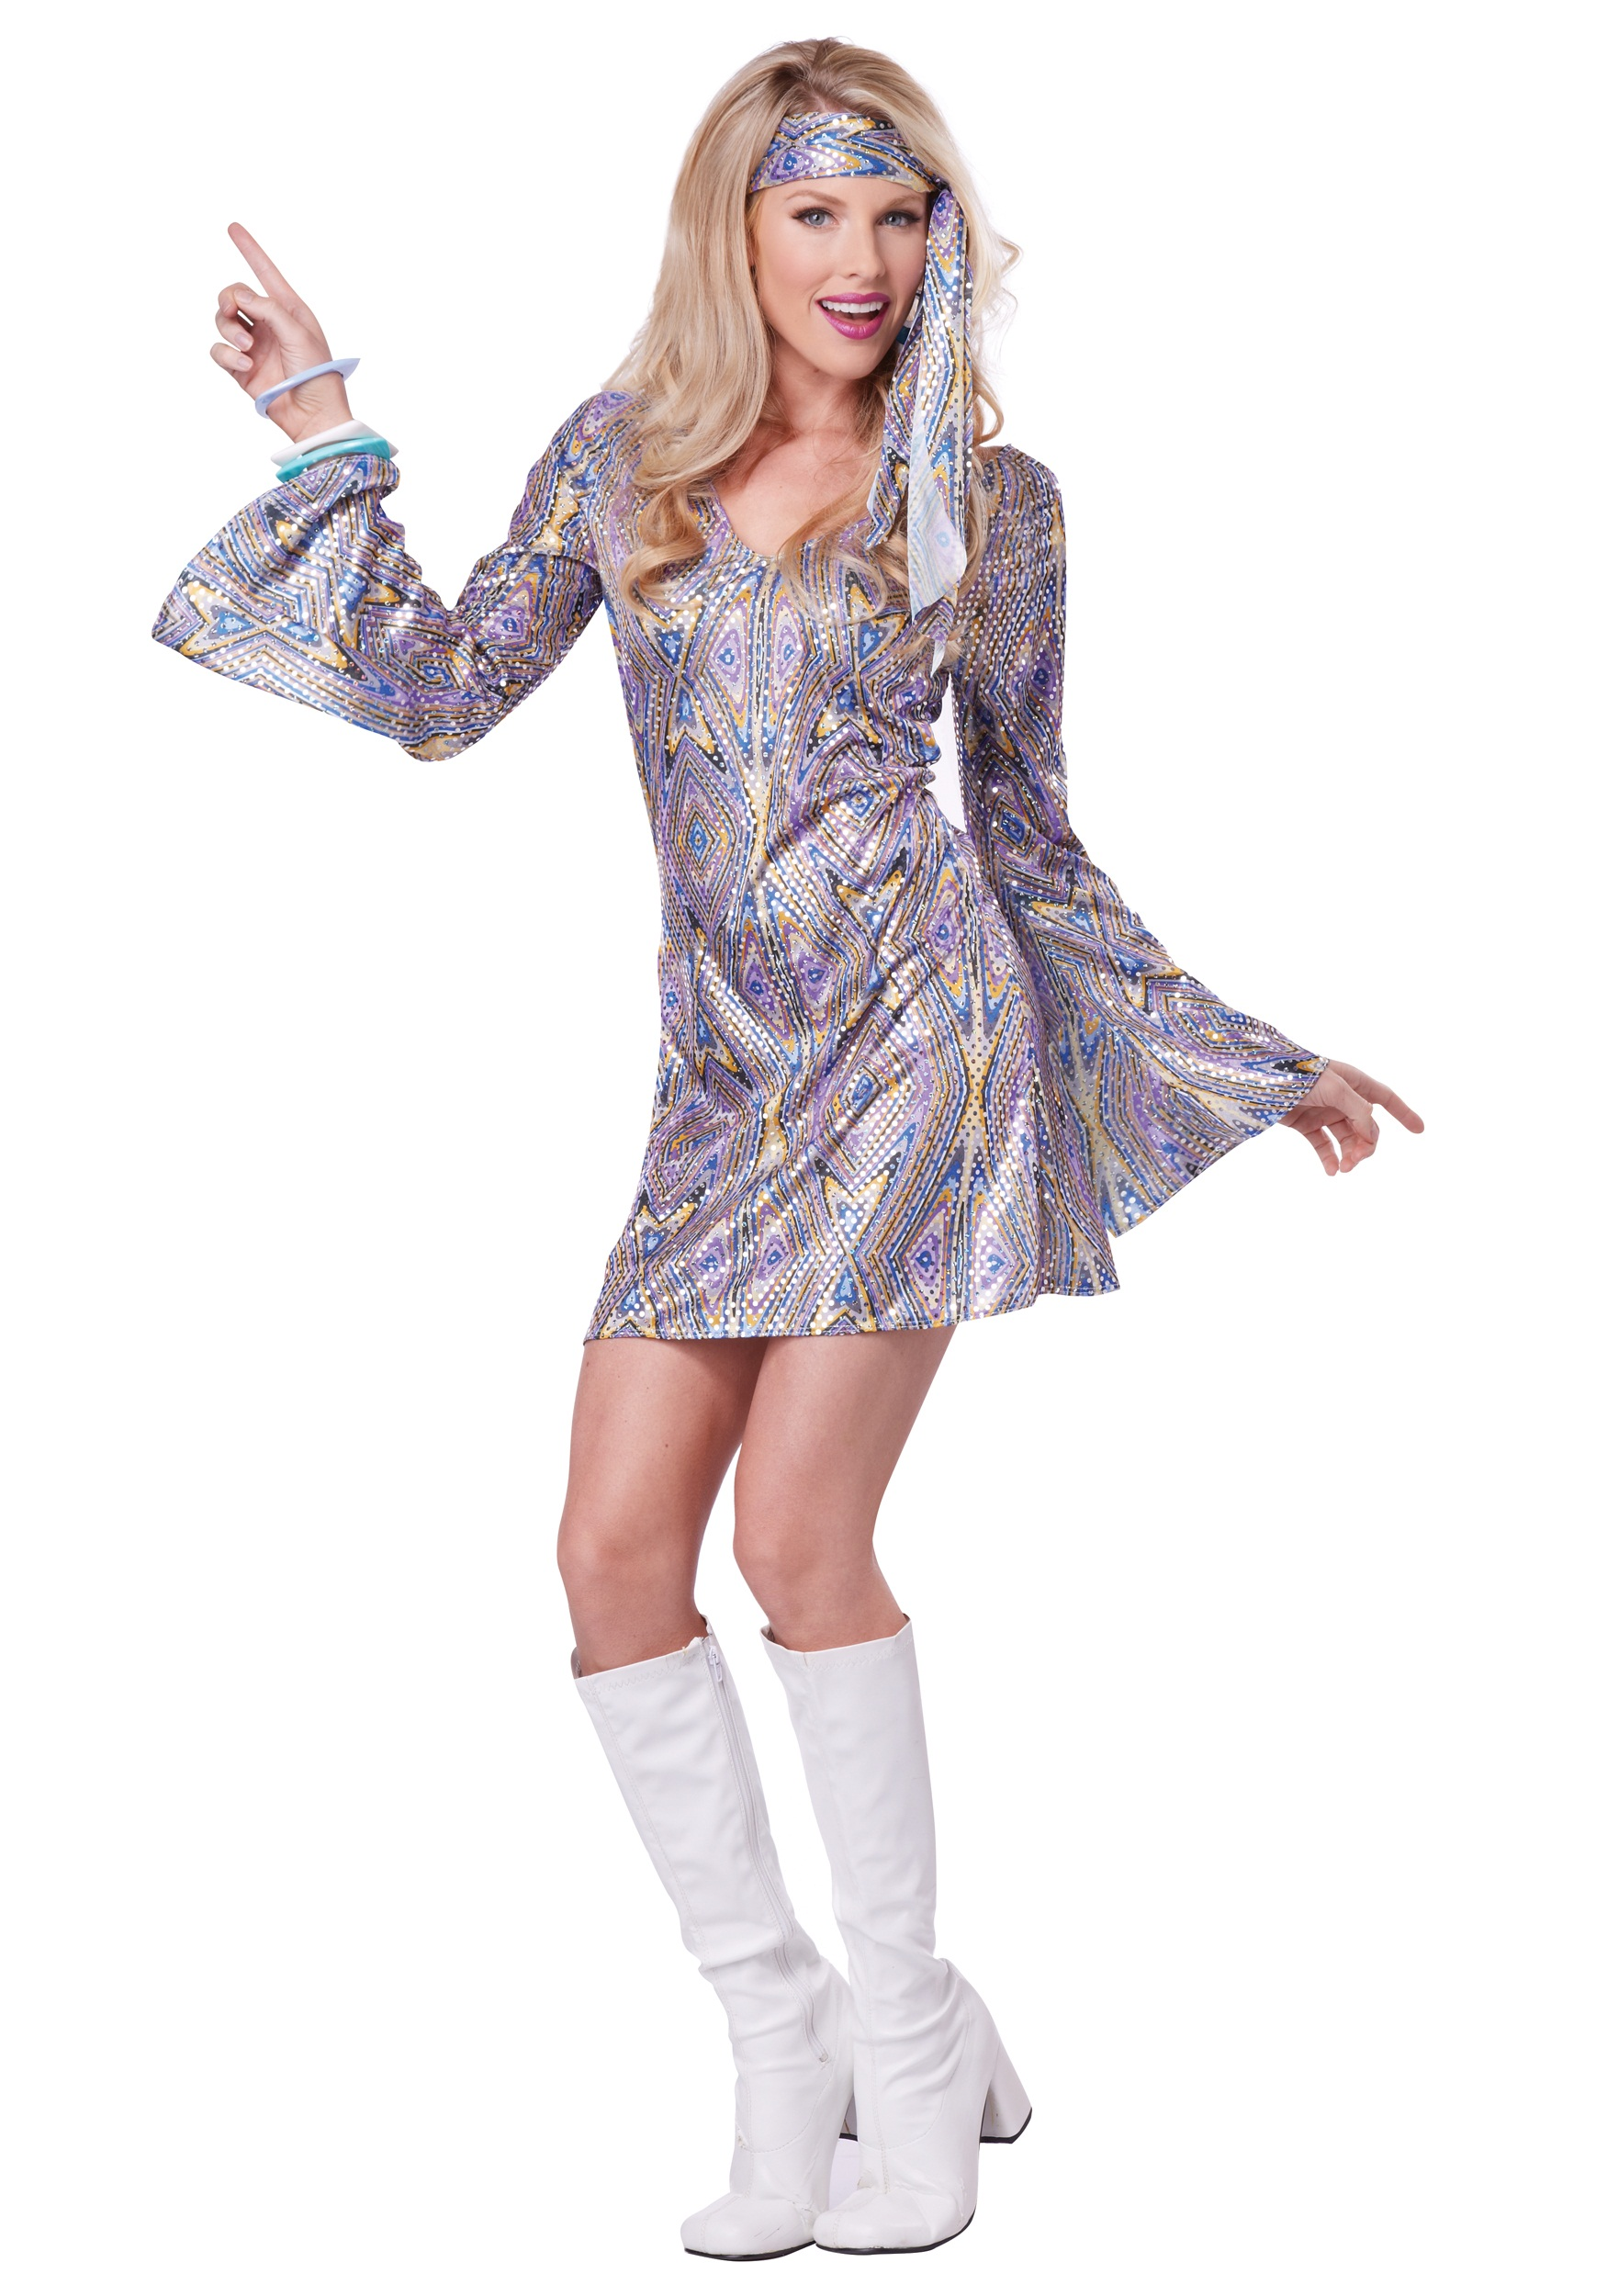 70s Disco Fashion: Disco Clothes, Outfits for Girls and Guys 91